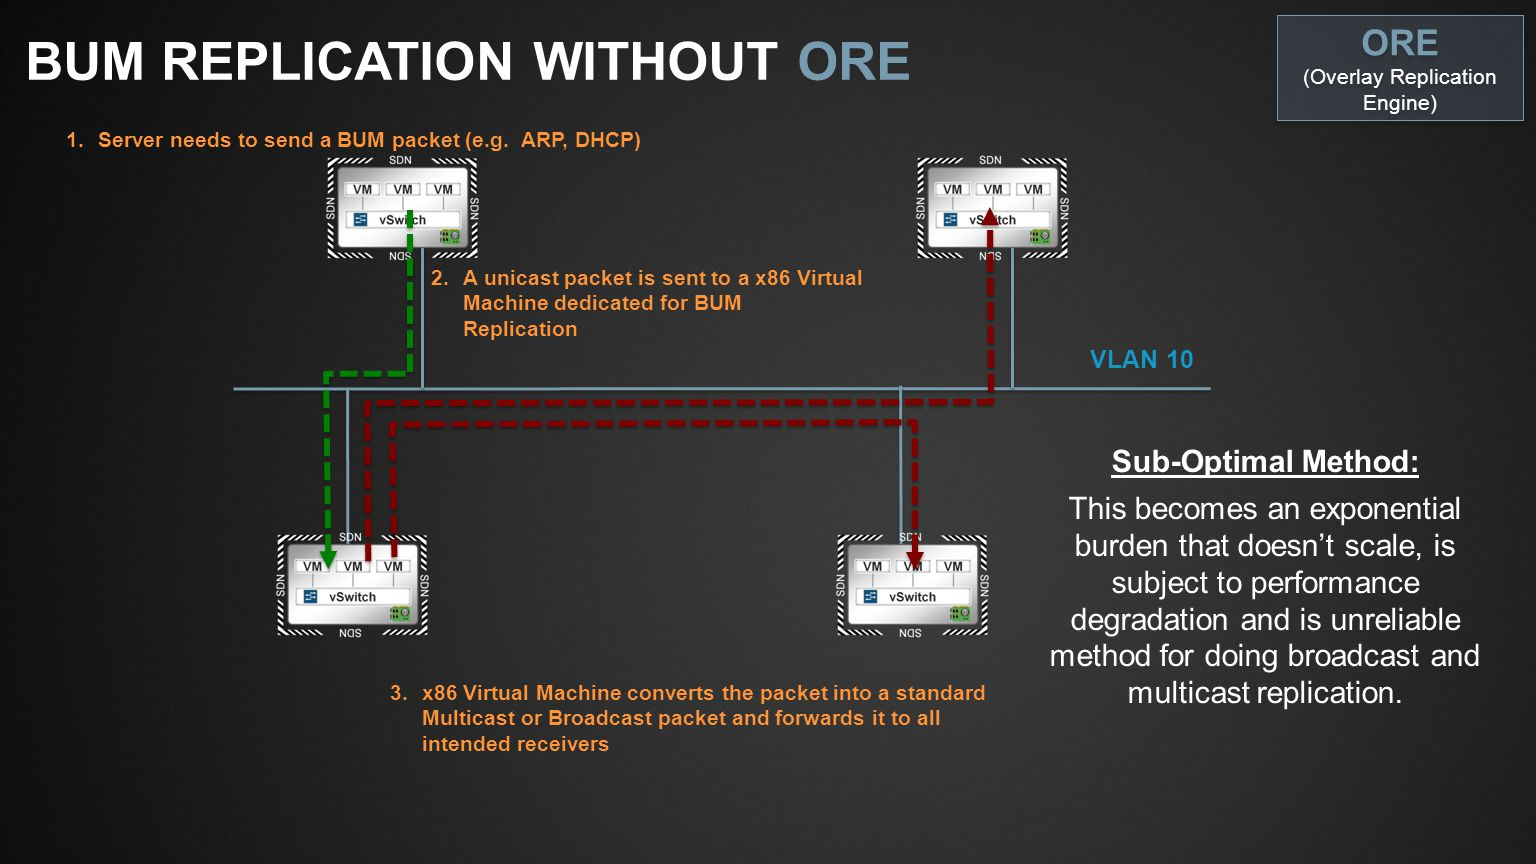 Slide Type Juniper Networks Large Venue Template / 16x9 / V6 Blank SlideTitle and Content 1-Line BUM REPLICATION WITH ORE VLAN 10 1.Server needs to send a BUM packet (e.g.